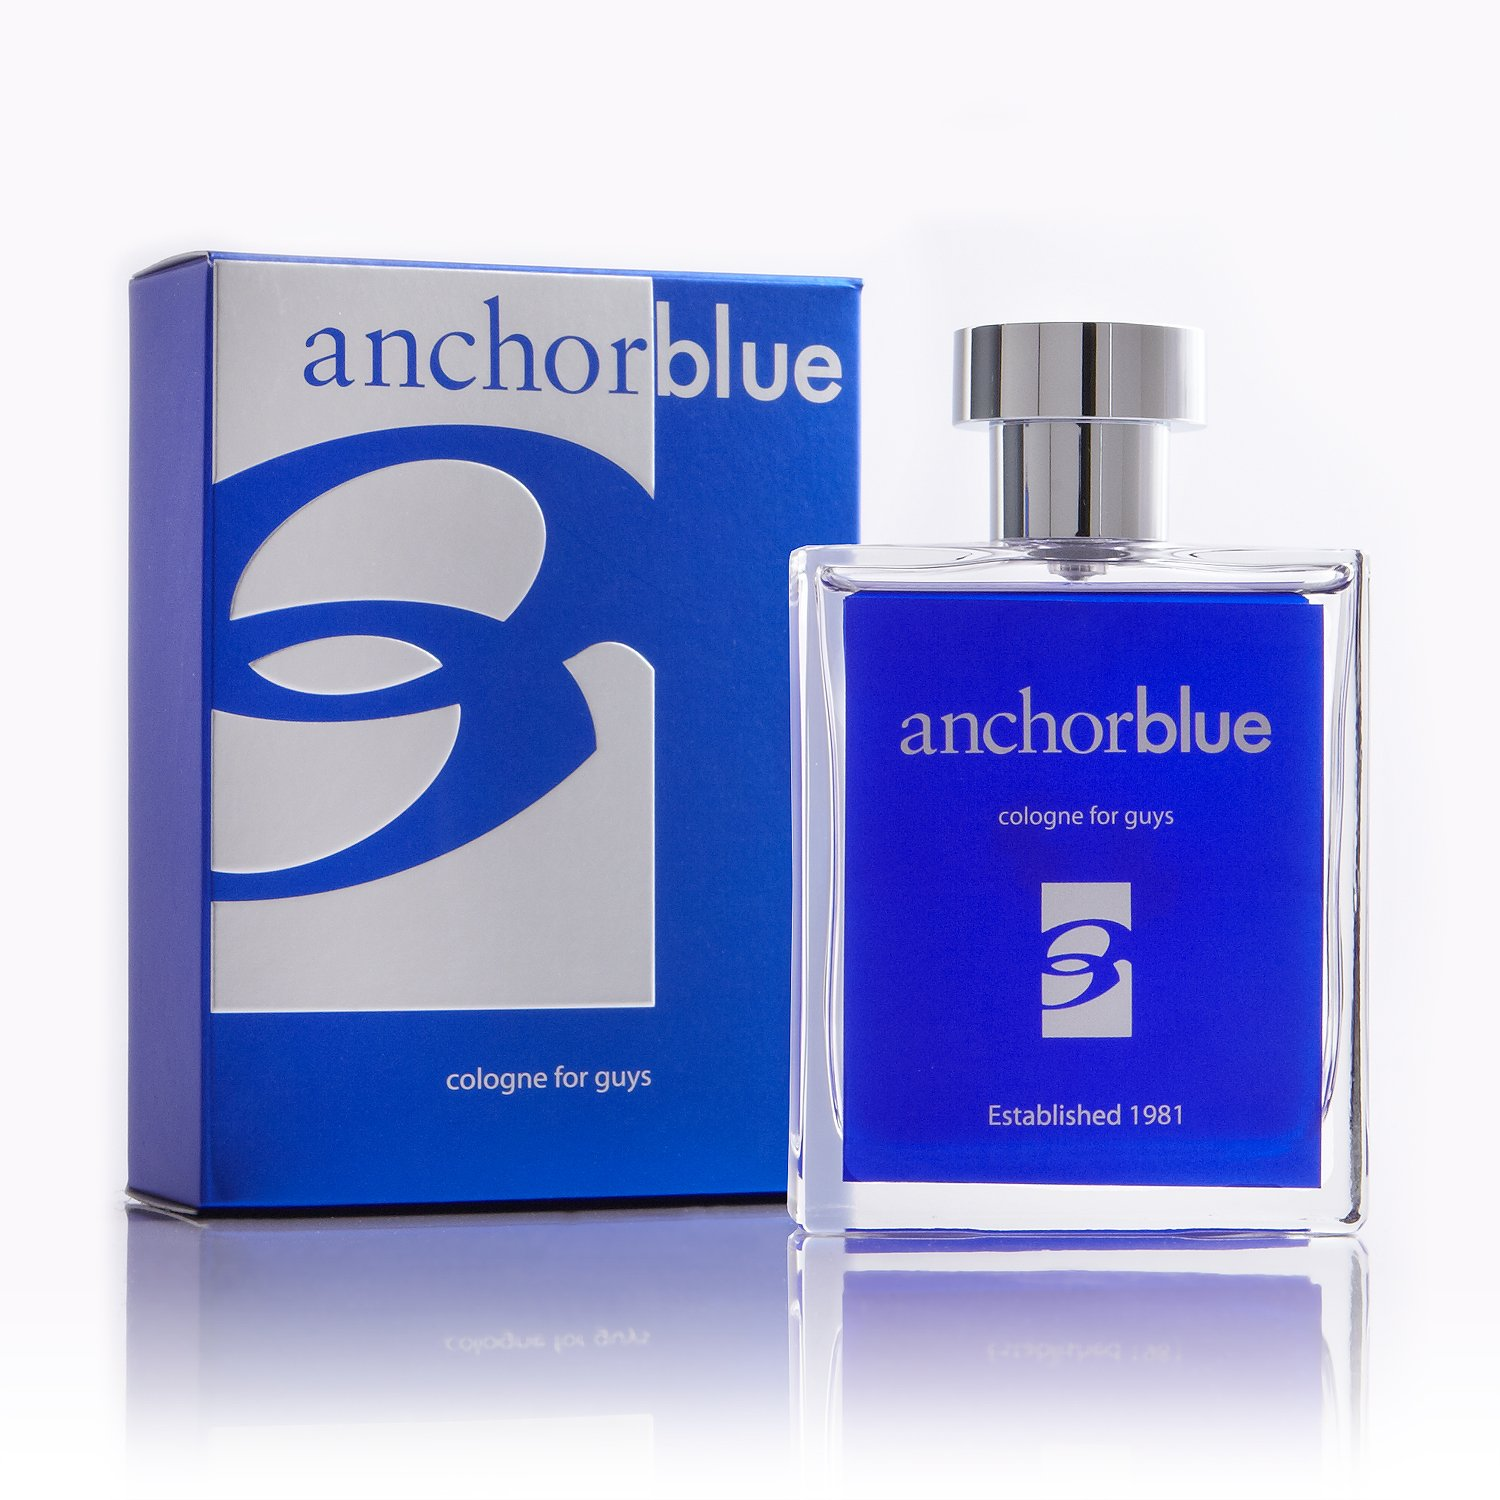 Anchor Blue .5 oz. Cologne Spray (1 bottle) by Anchor Blue